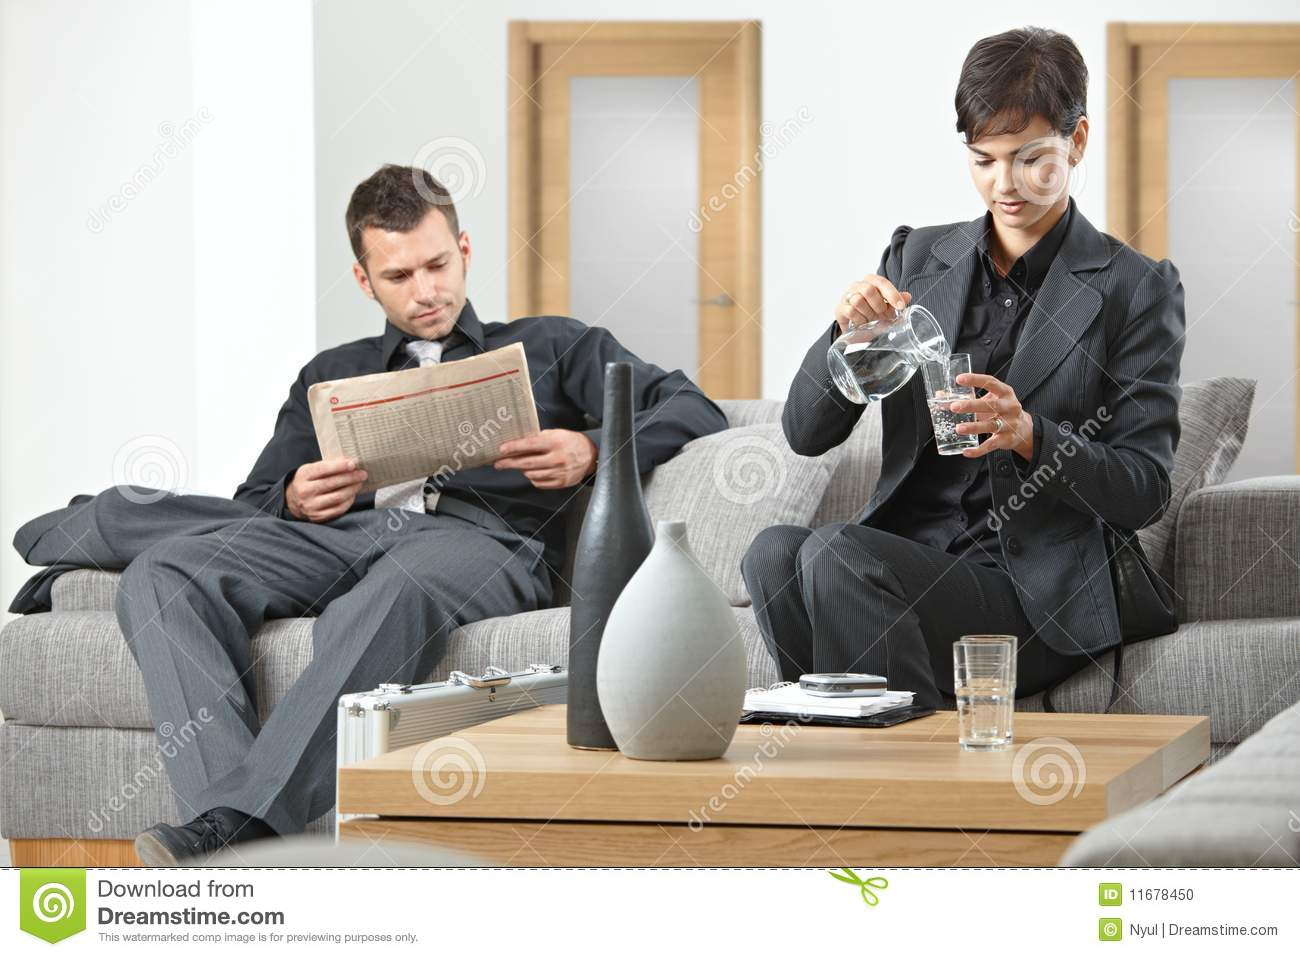 Business People Waiting Stock Photo - Image: 11678450